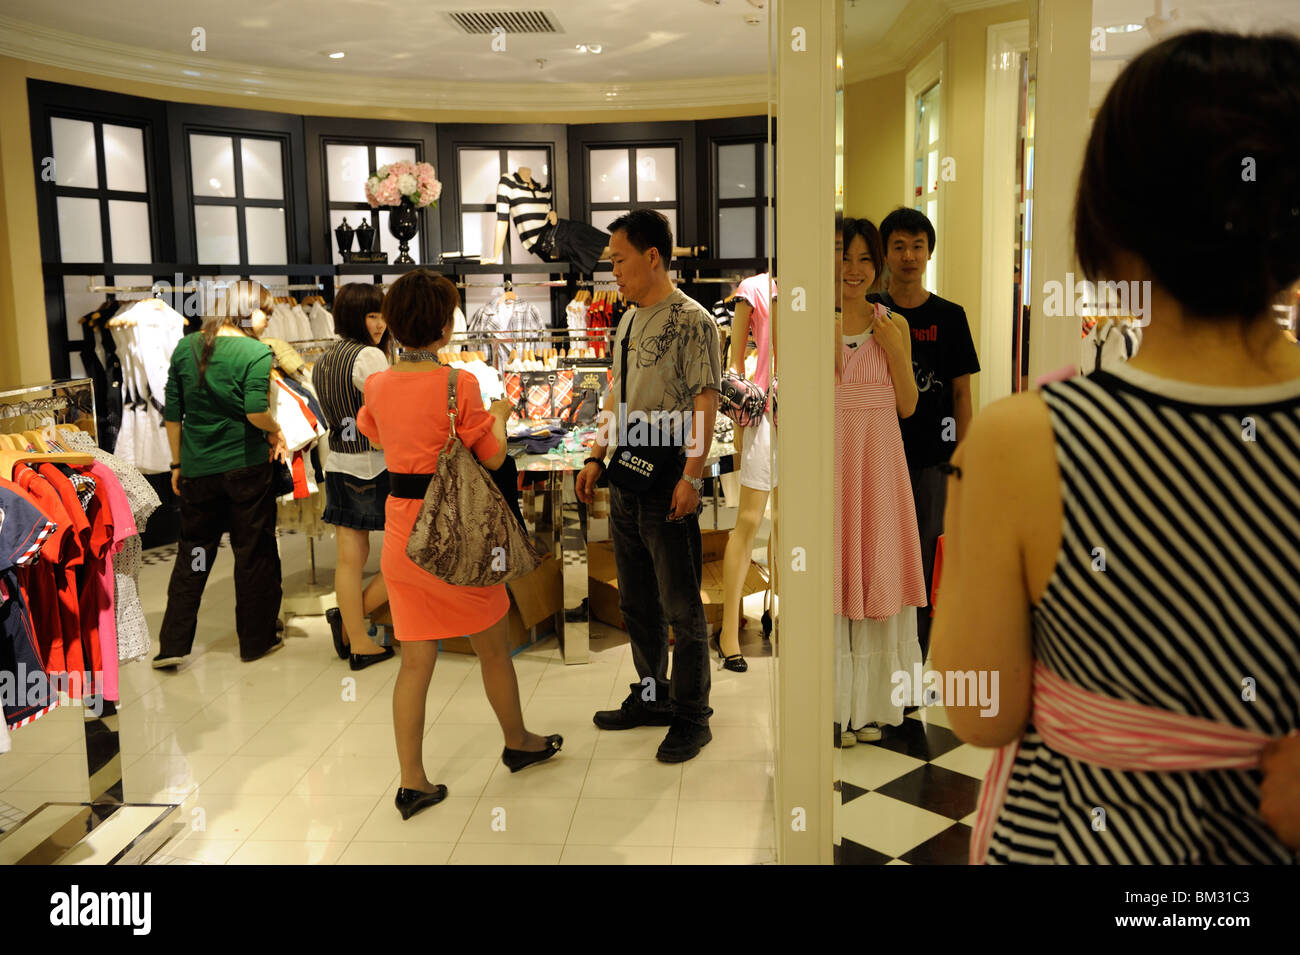 2d032b6a4 Mesdames chinois shopping à Angleterre marque Scofiled femmes à Beijing  magasin Scitech Premium Outlet Photo Stock